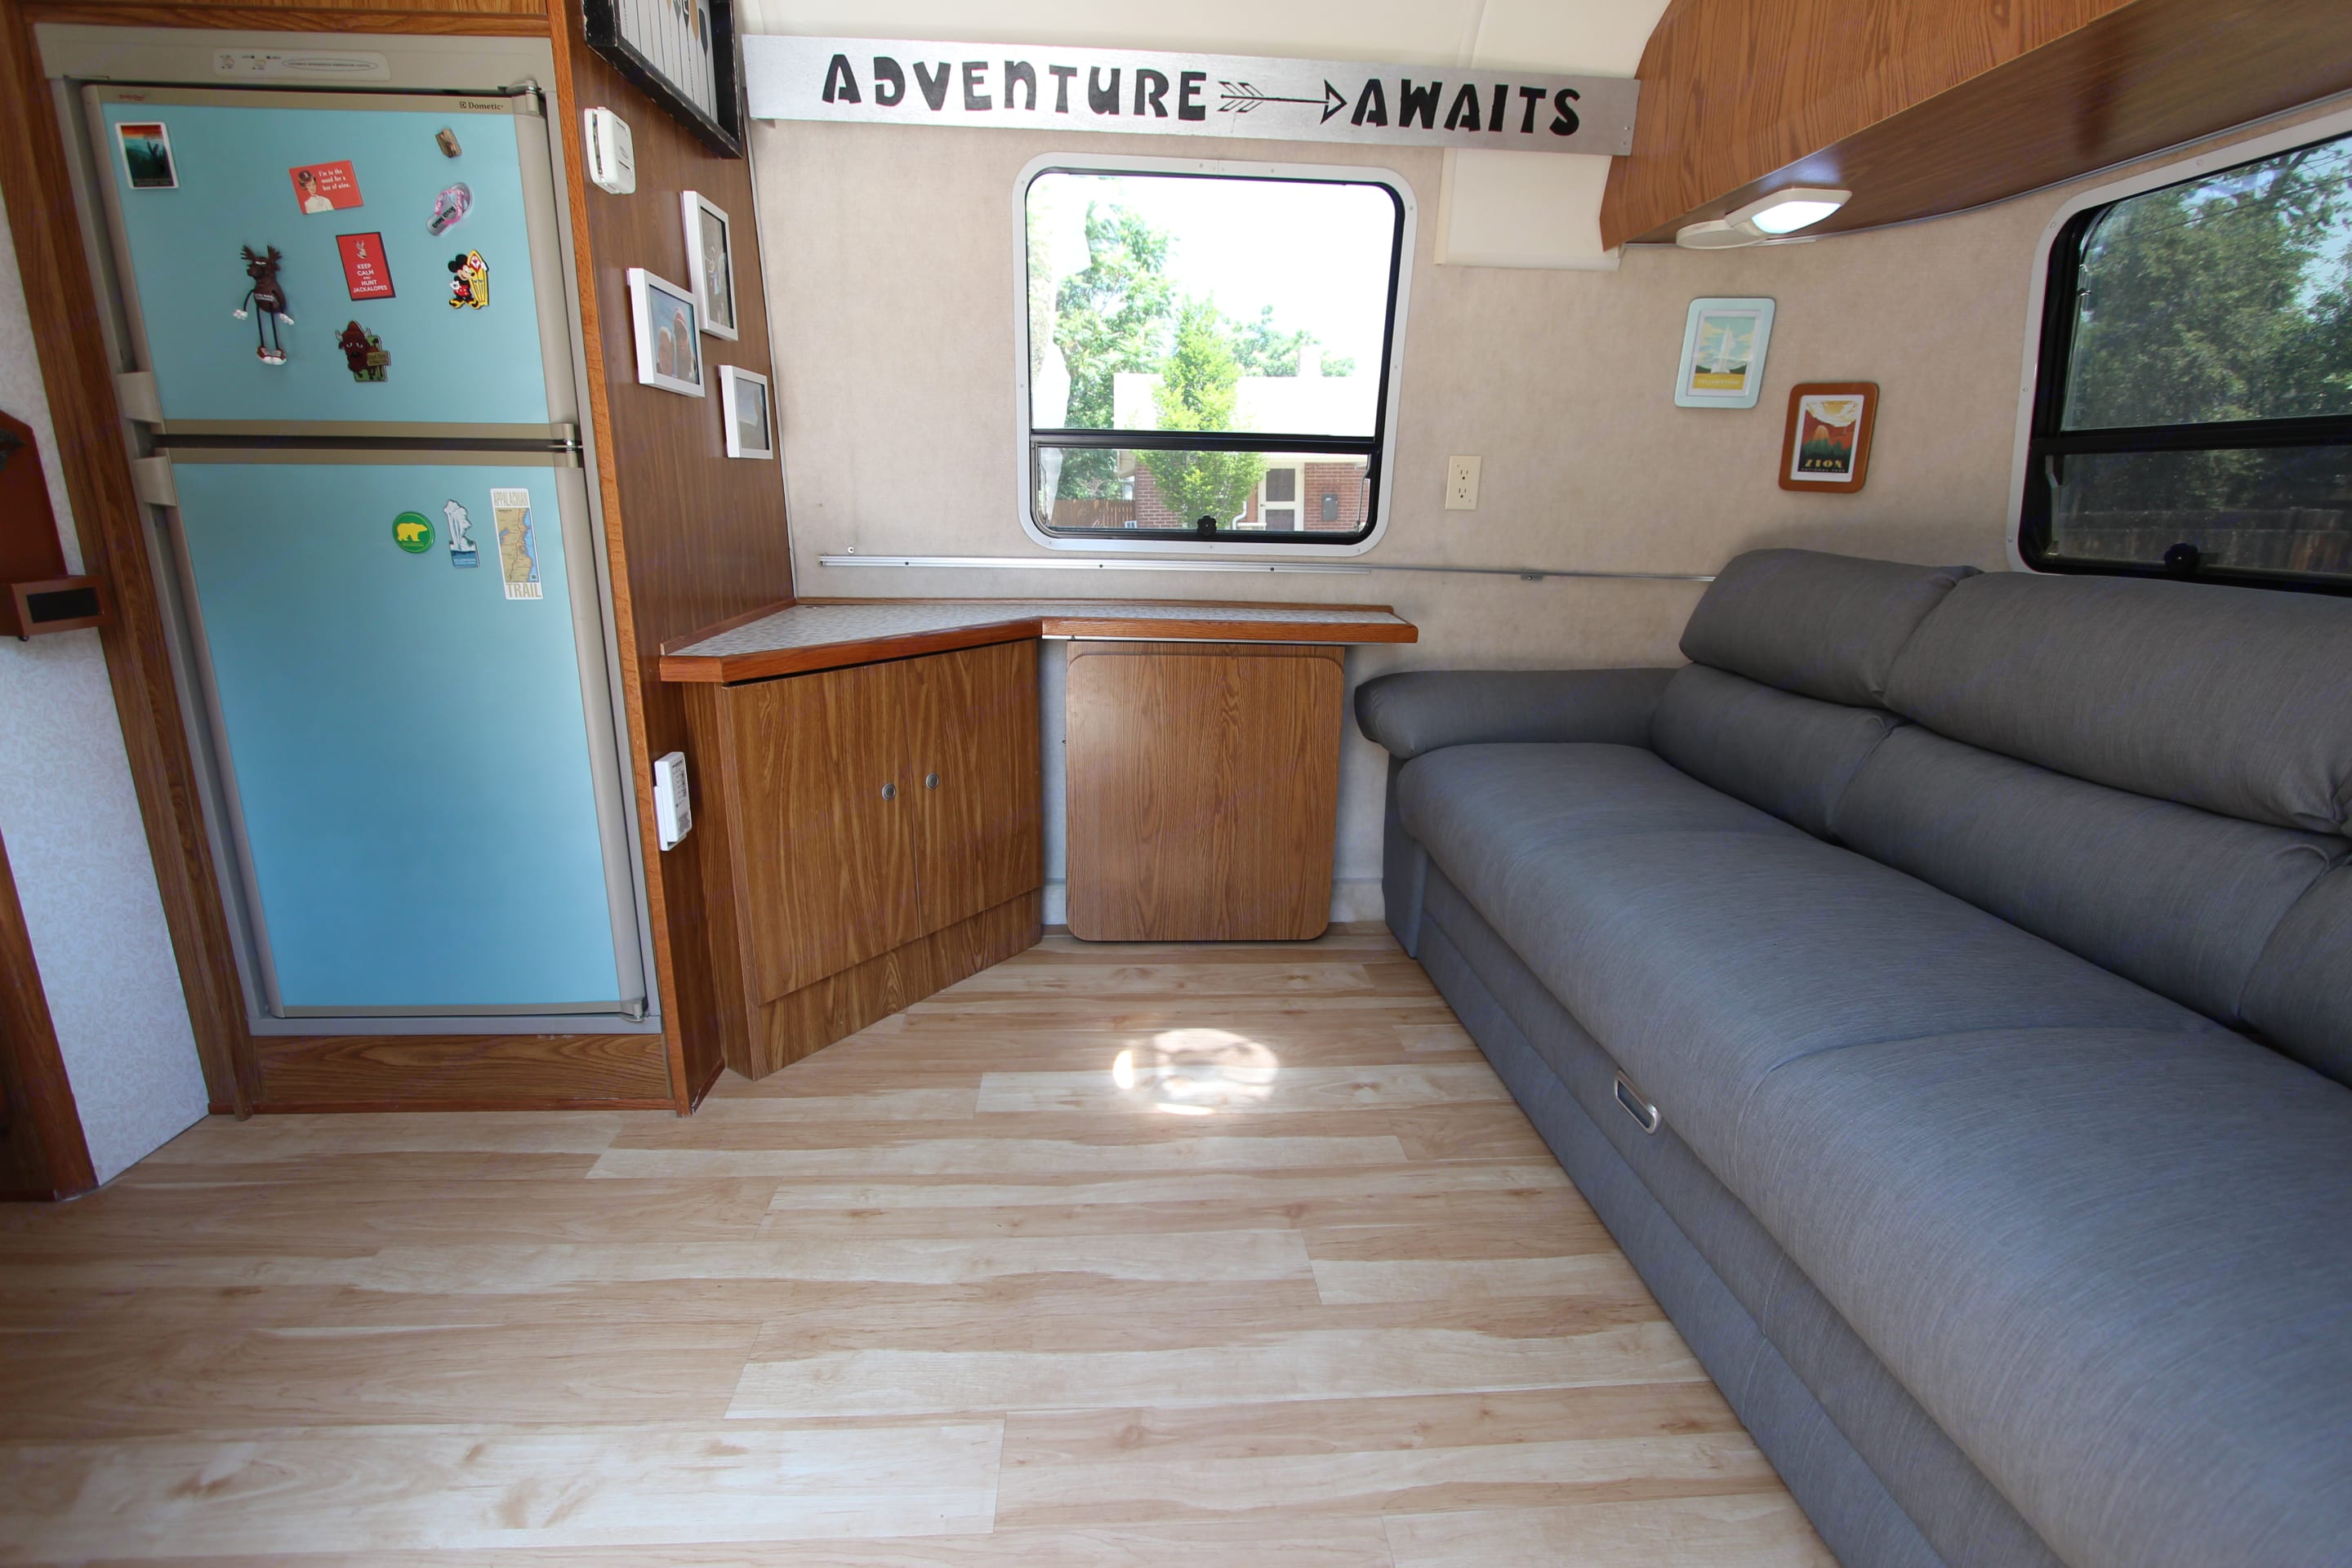 Table and chair can be stowed and couch folds out into bed. Airstream Safari 1999